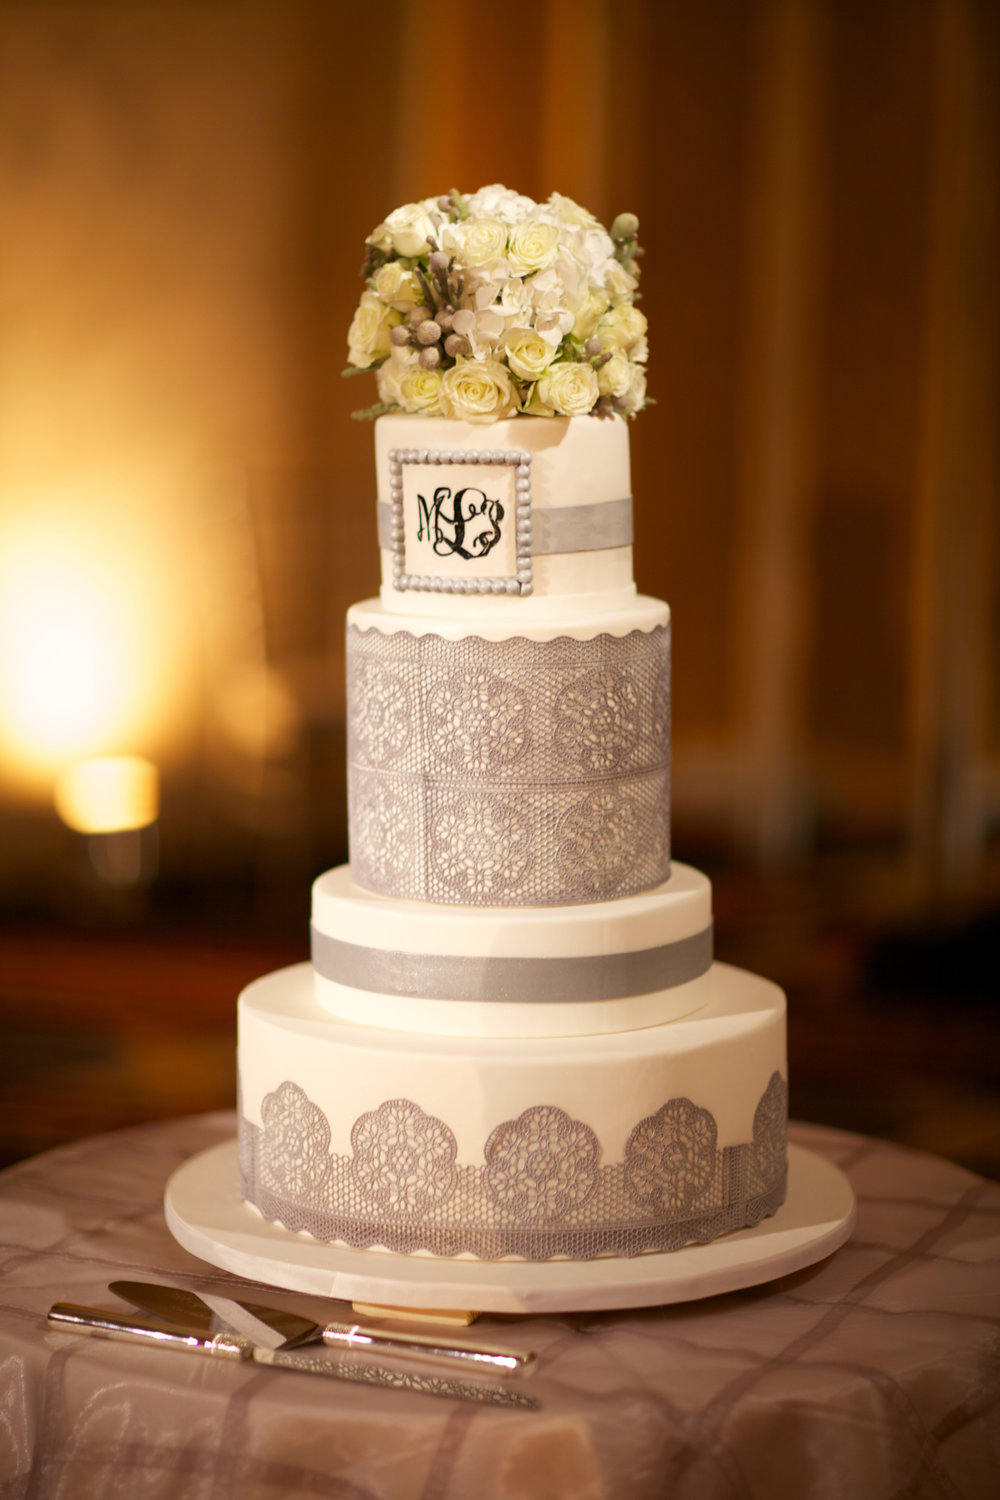 16 Wedding Planner Philadelphia Ritz Carlton.jpg